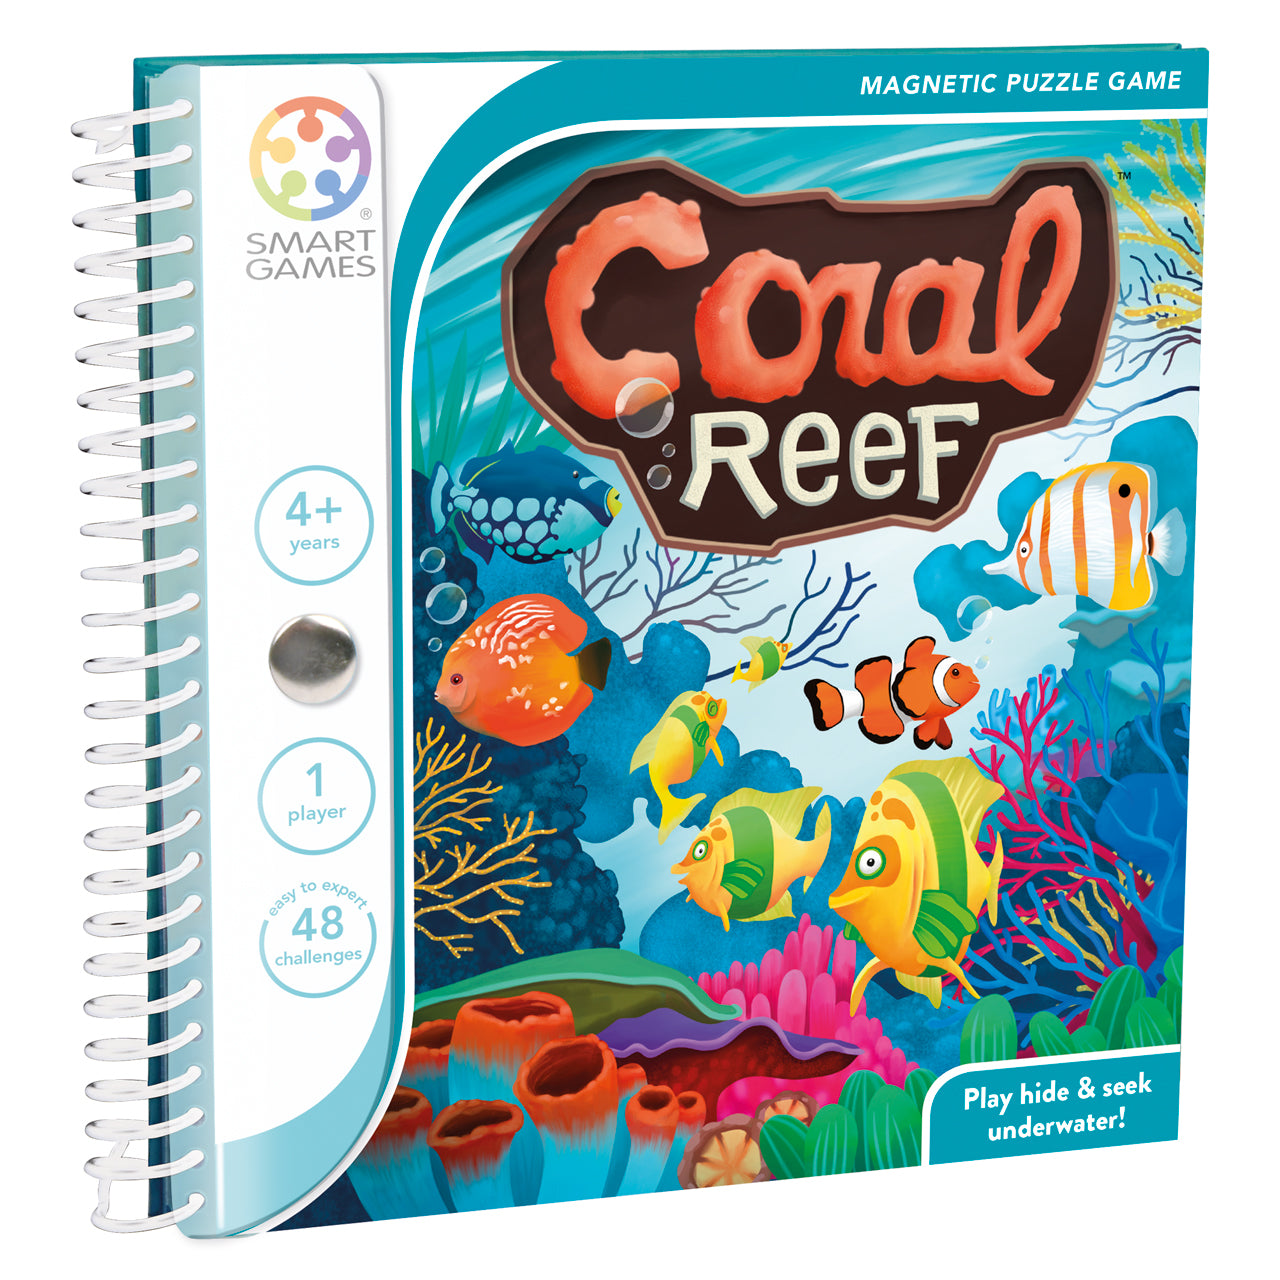 Smart Games Coral Reef Magnetic Puzzle Game